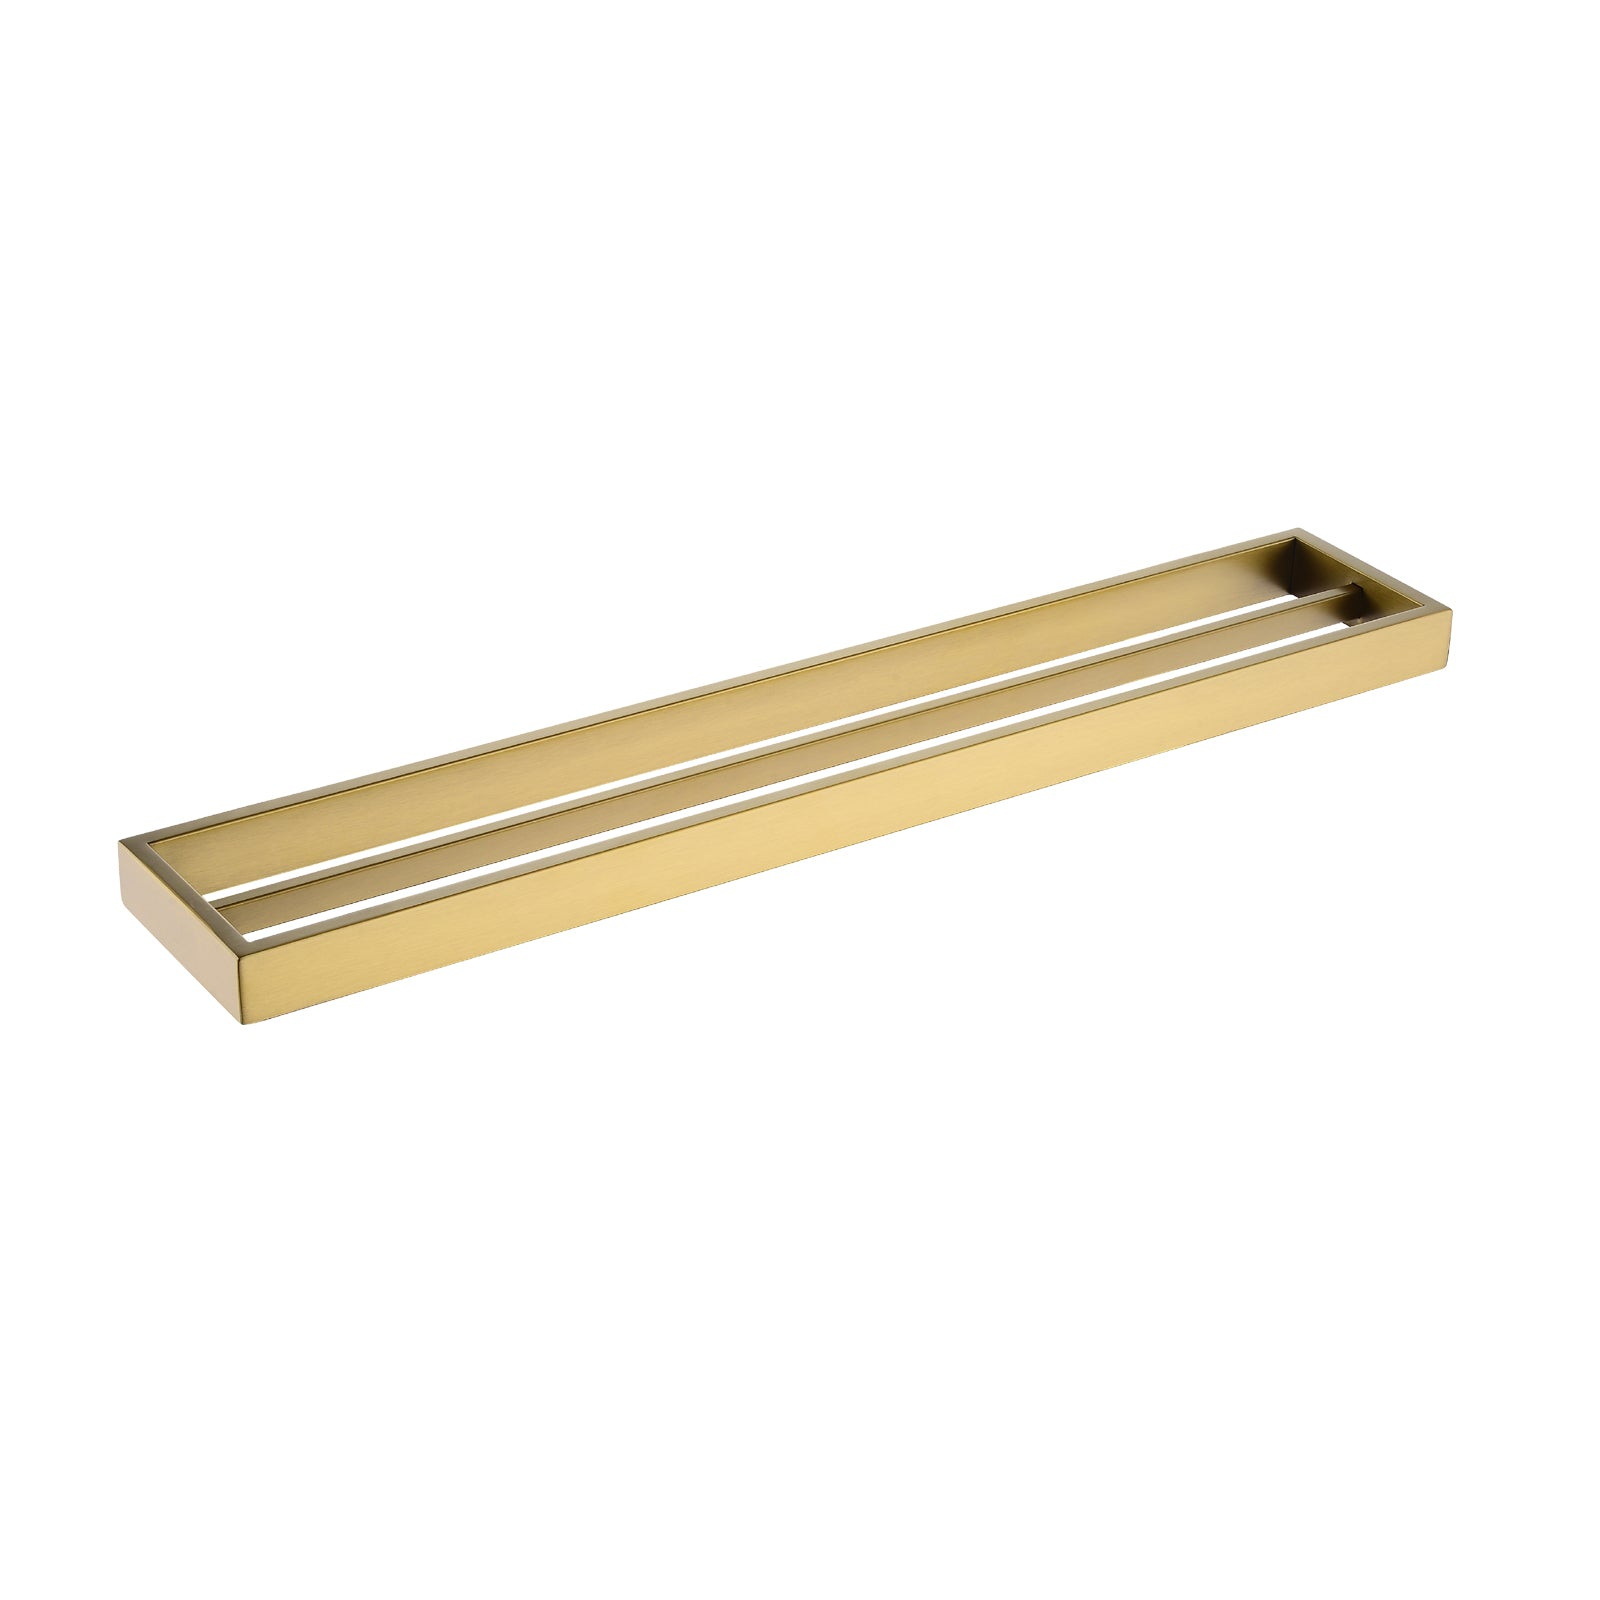 Cavallo Brushed Yellow Gold Square Double Towel Rail 600mm